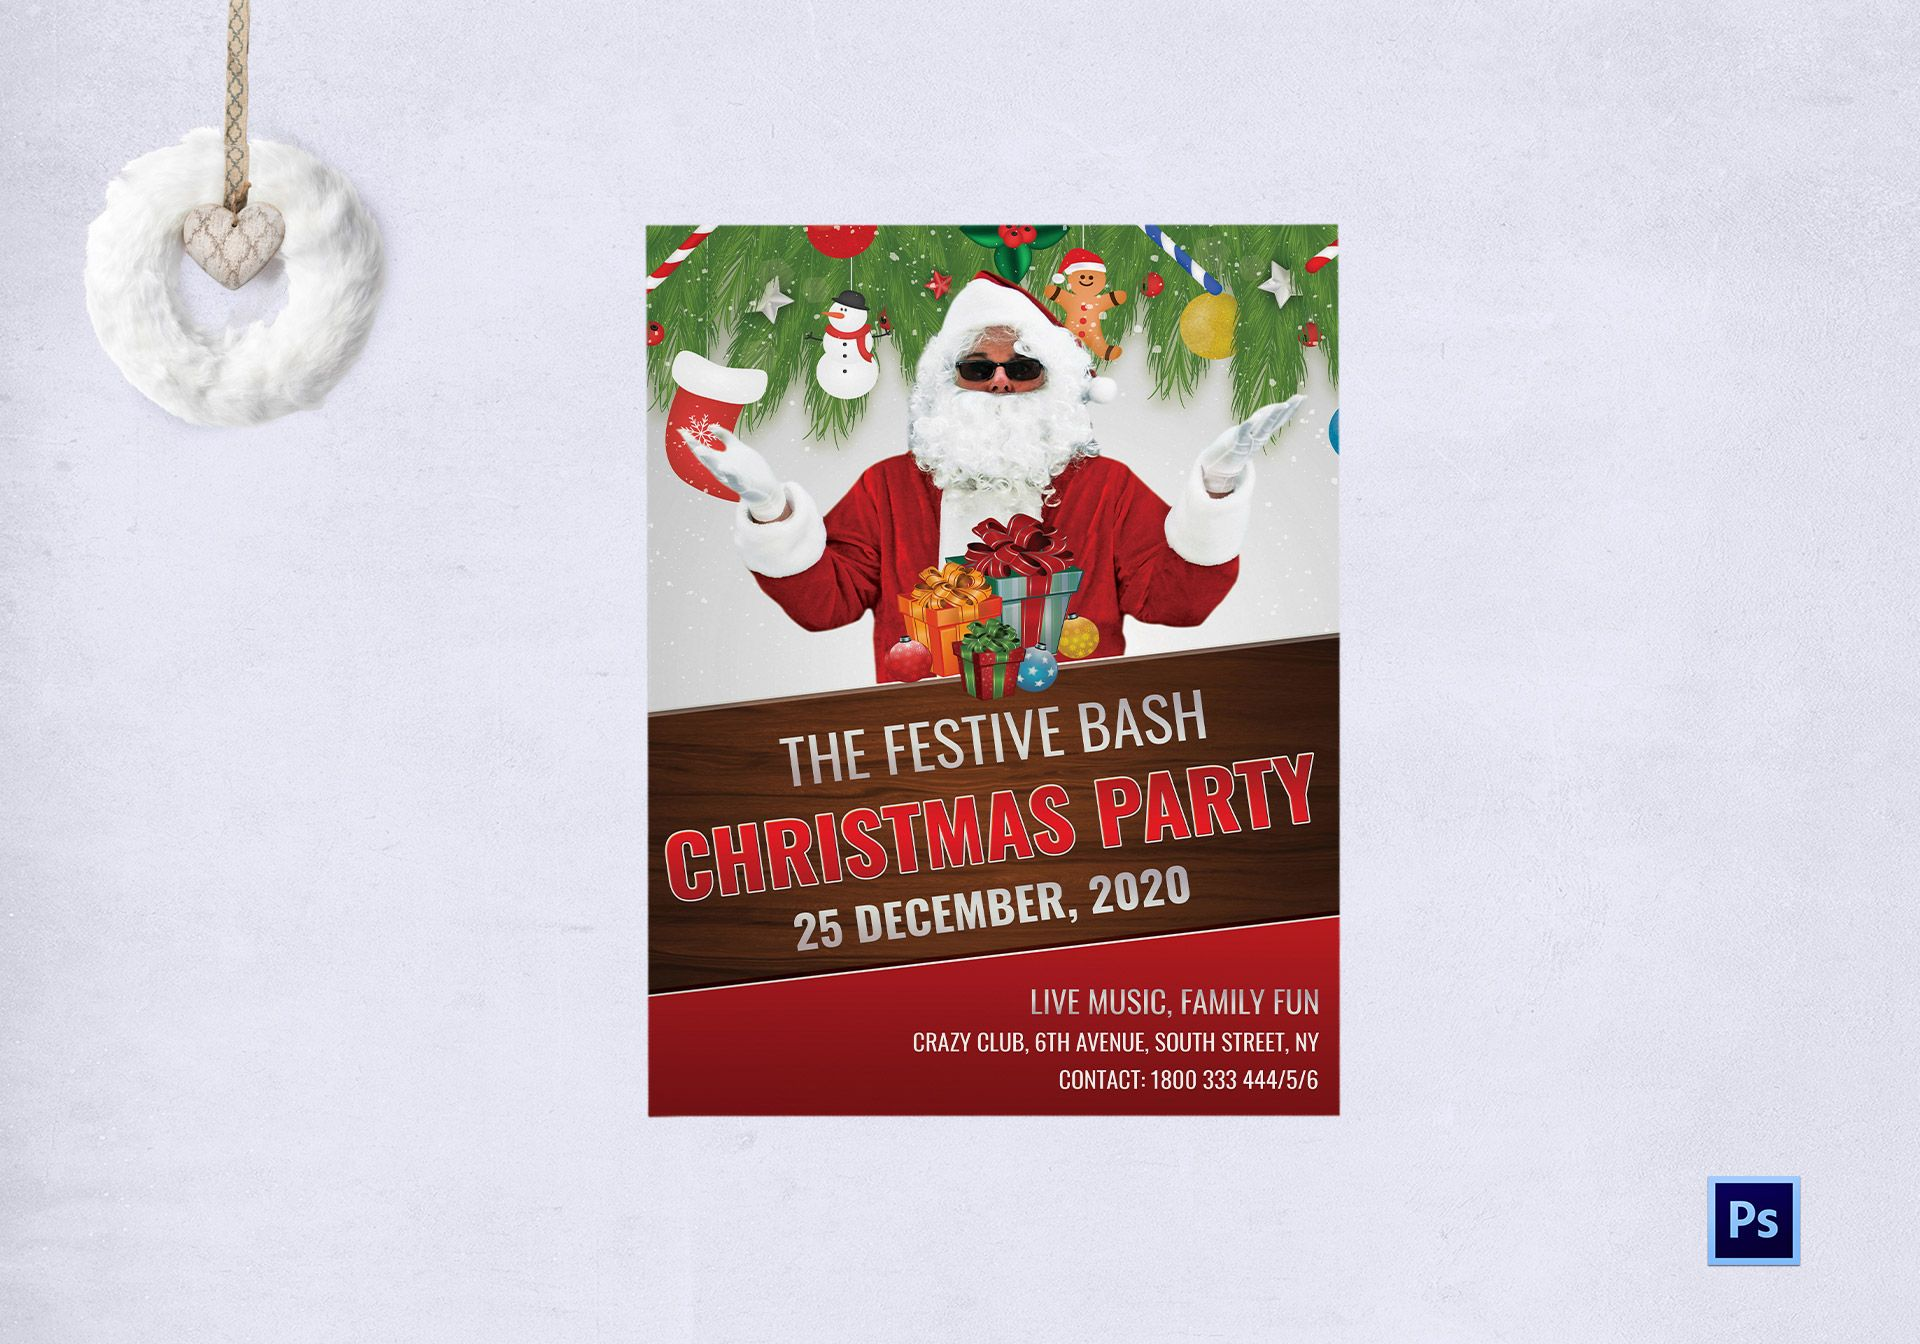 Christmas Party Flyer.Festive Bash Christmas Party Flyer